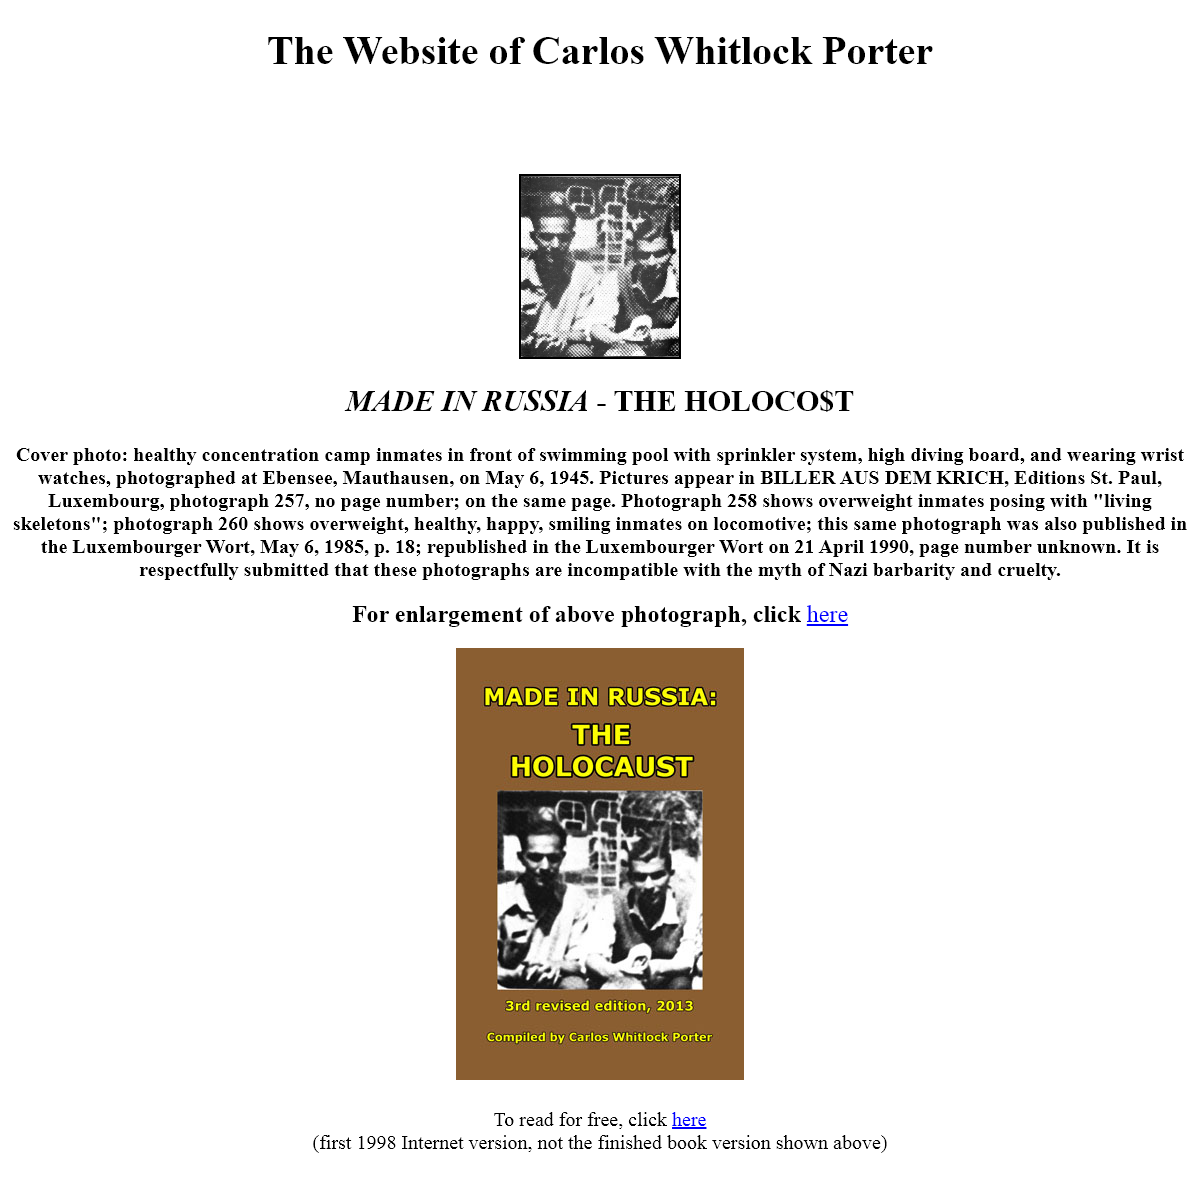 The website of Carlos Whitlock Porter